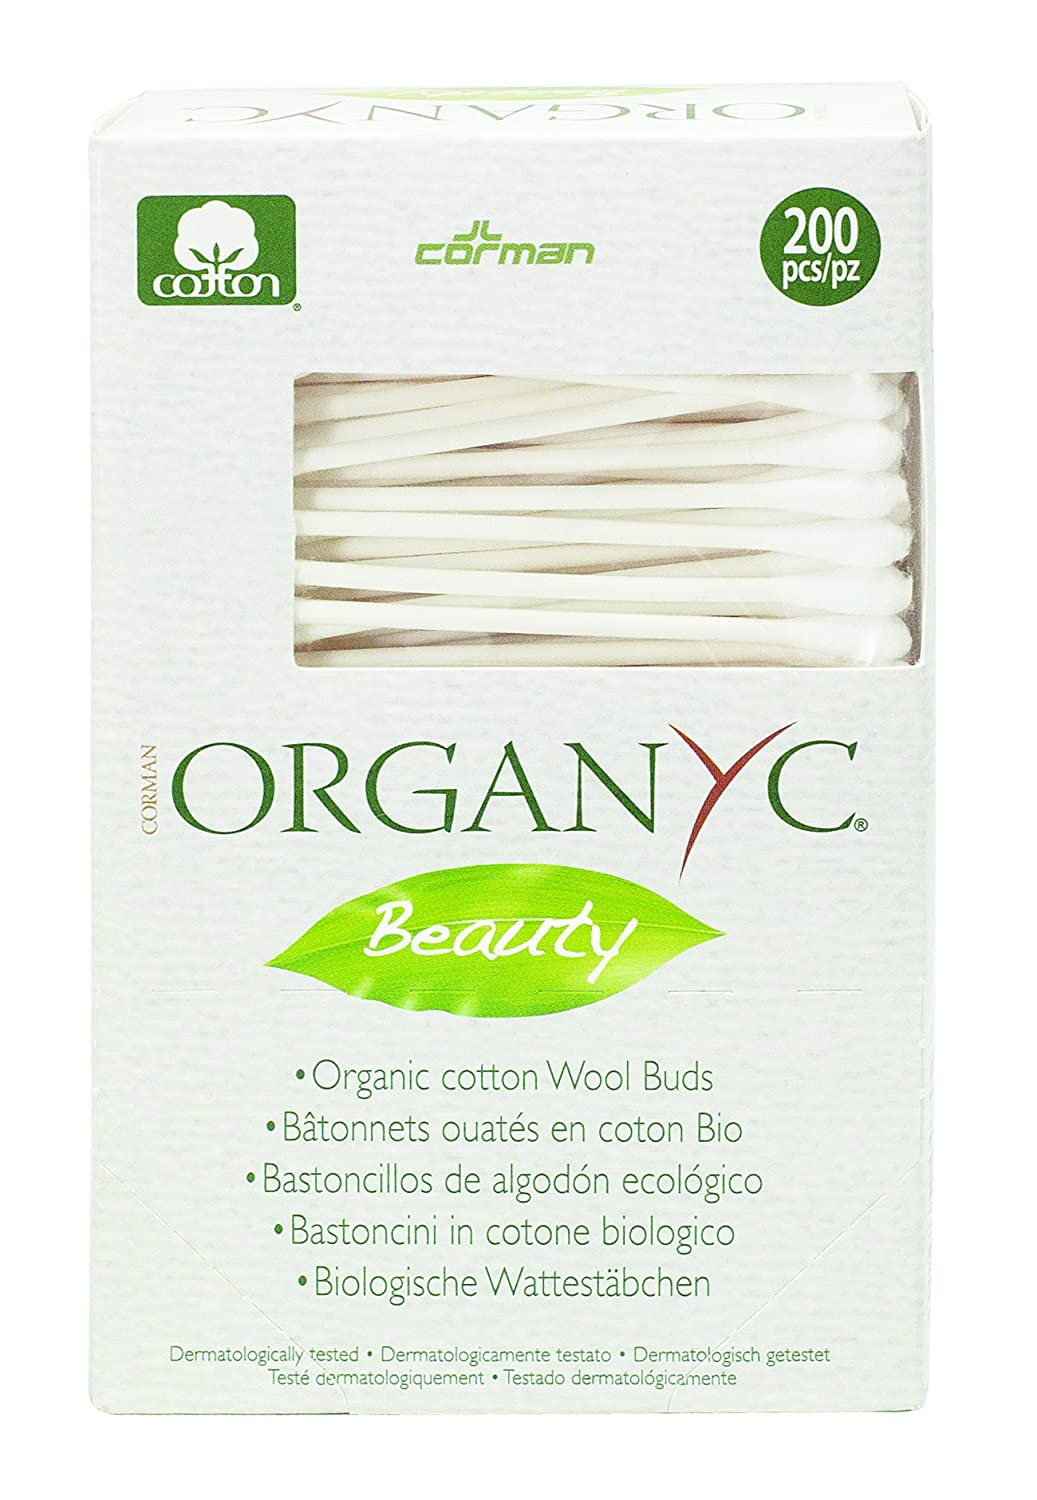 Organyc 100% Organic Cotton Swabs for Sensitive Skin, 200 Swabs Corman U.S.A. R00702